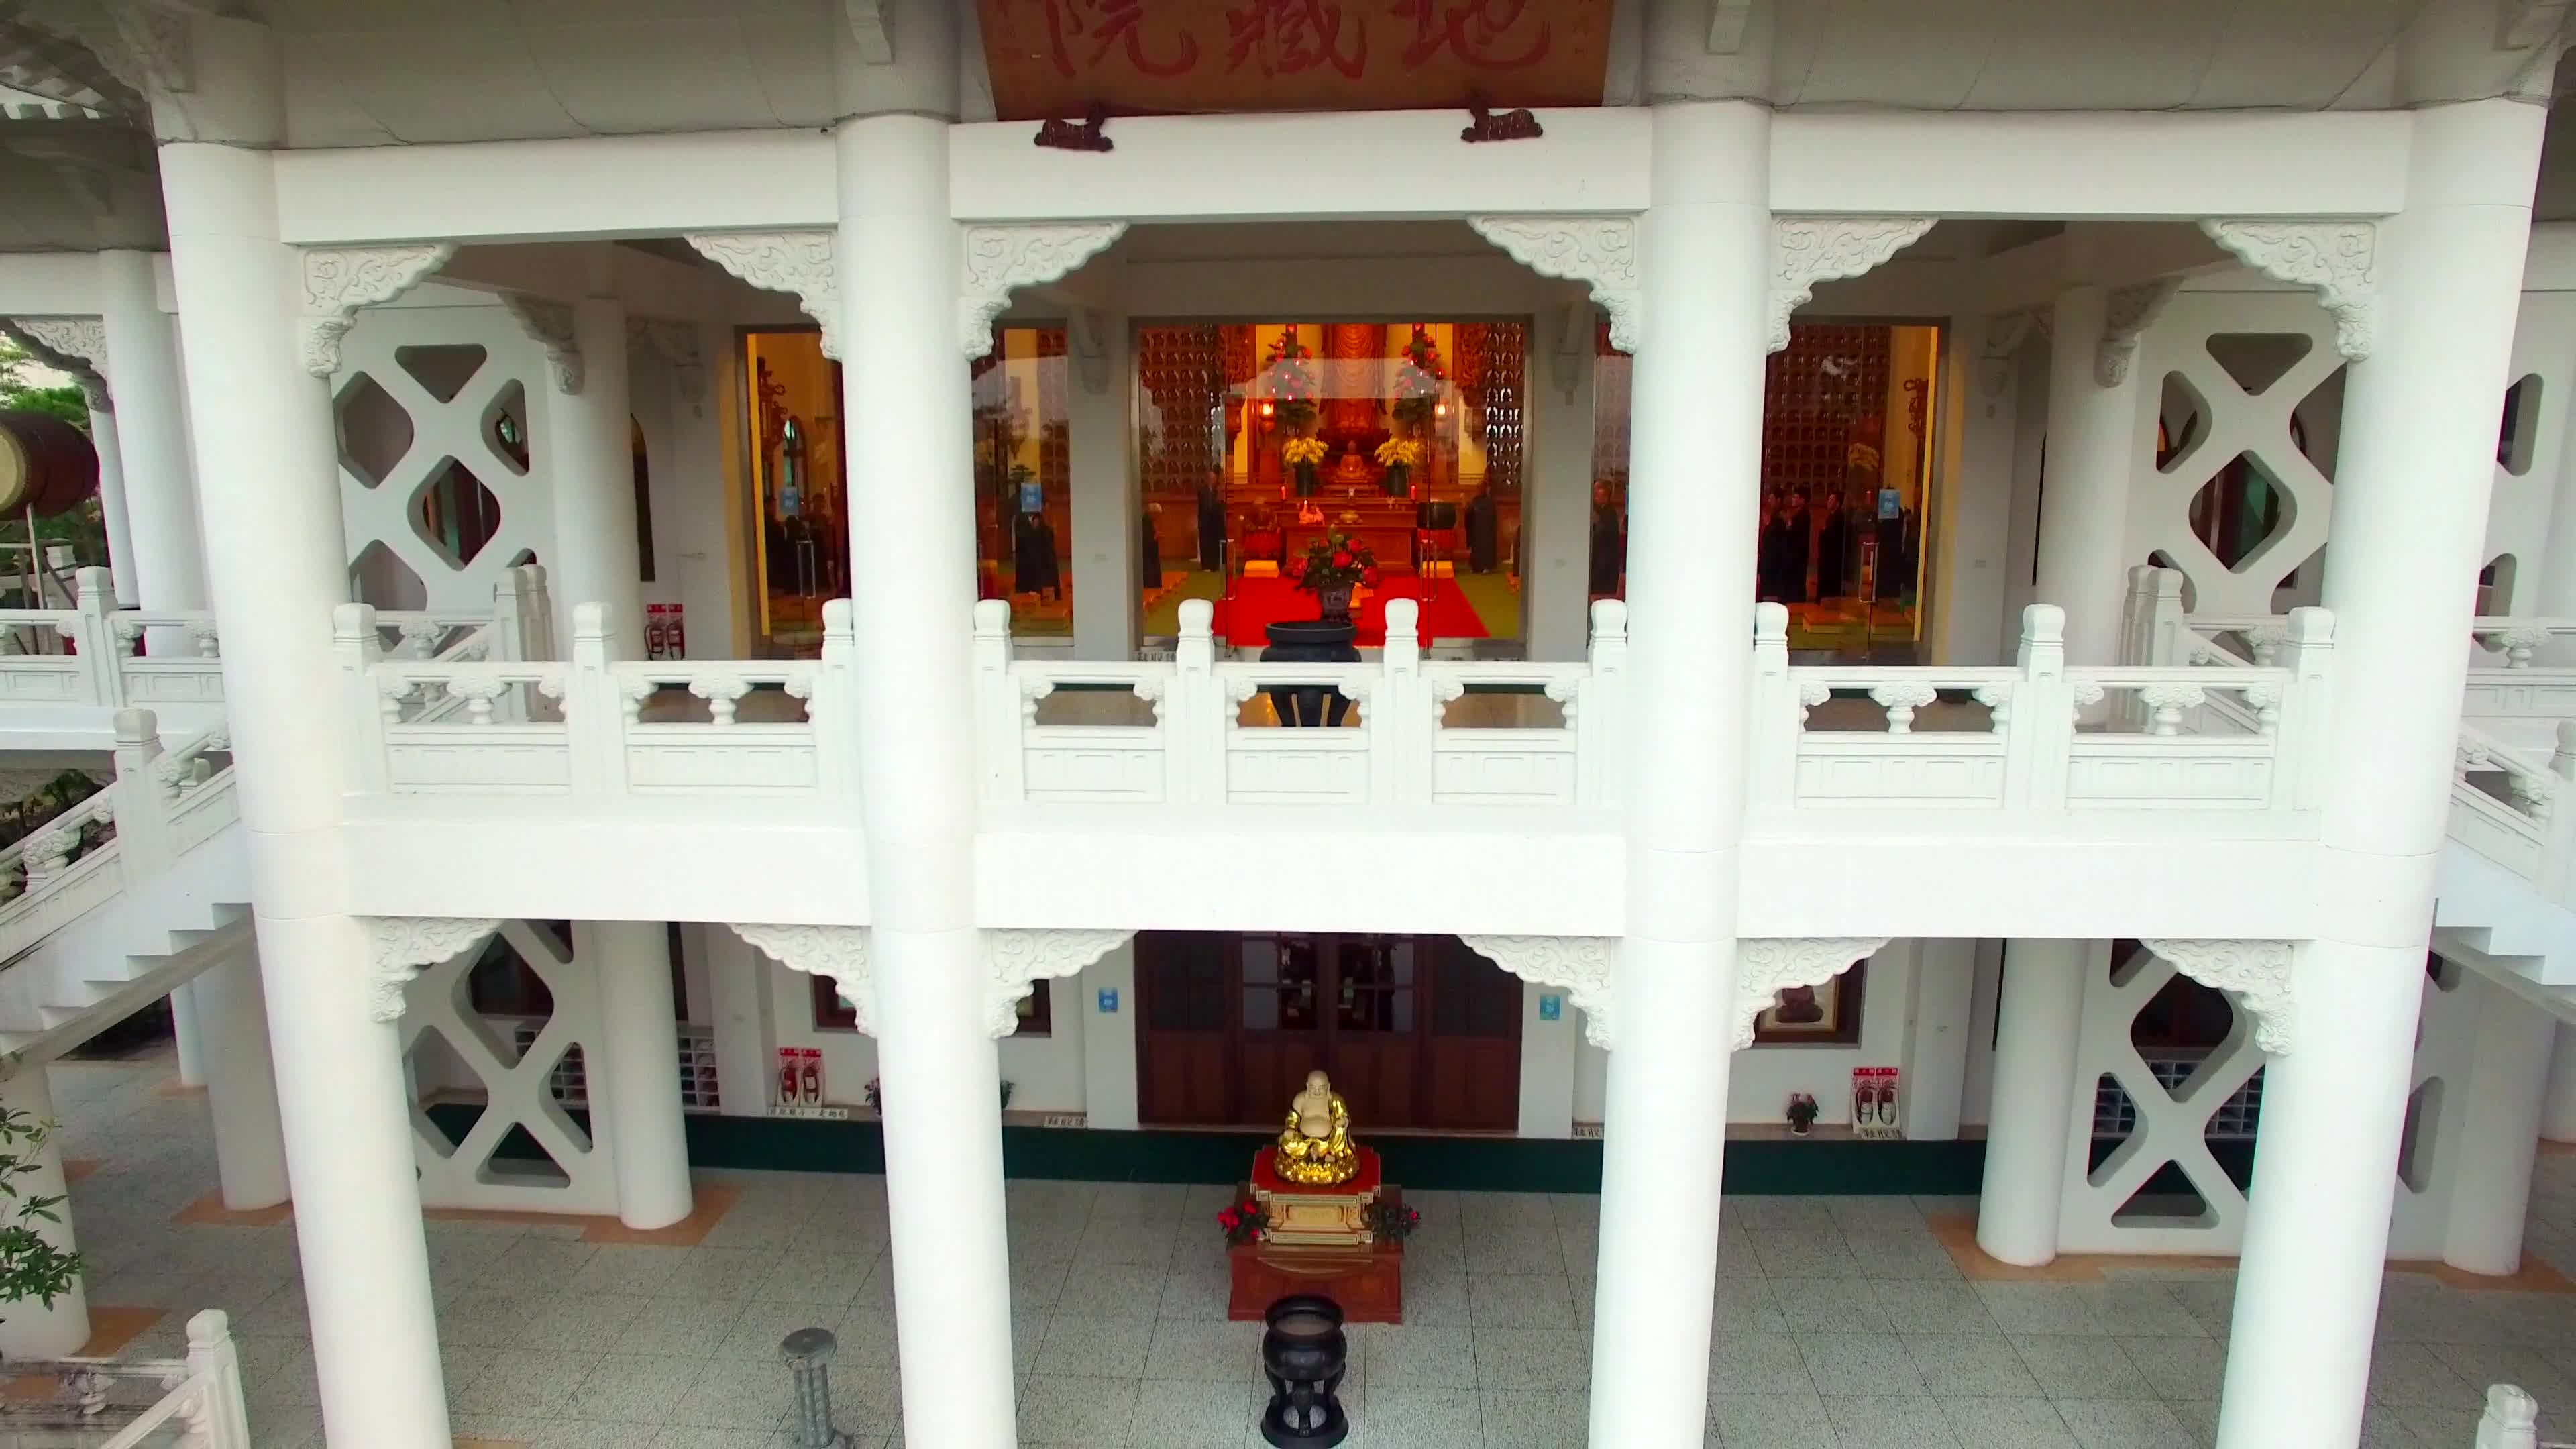 Drone shot of buddha inside the temple